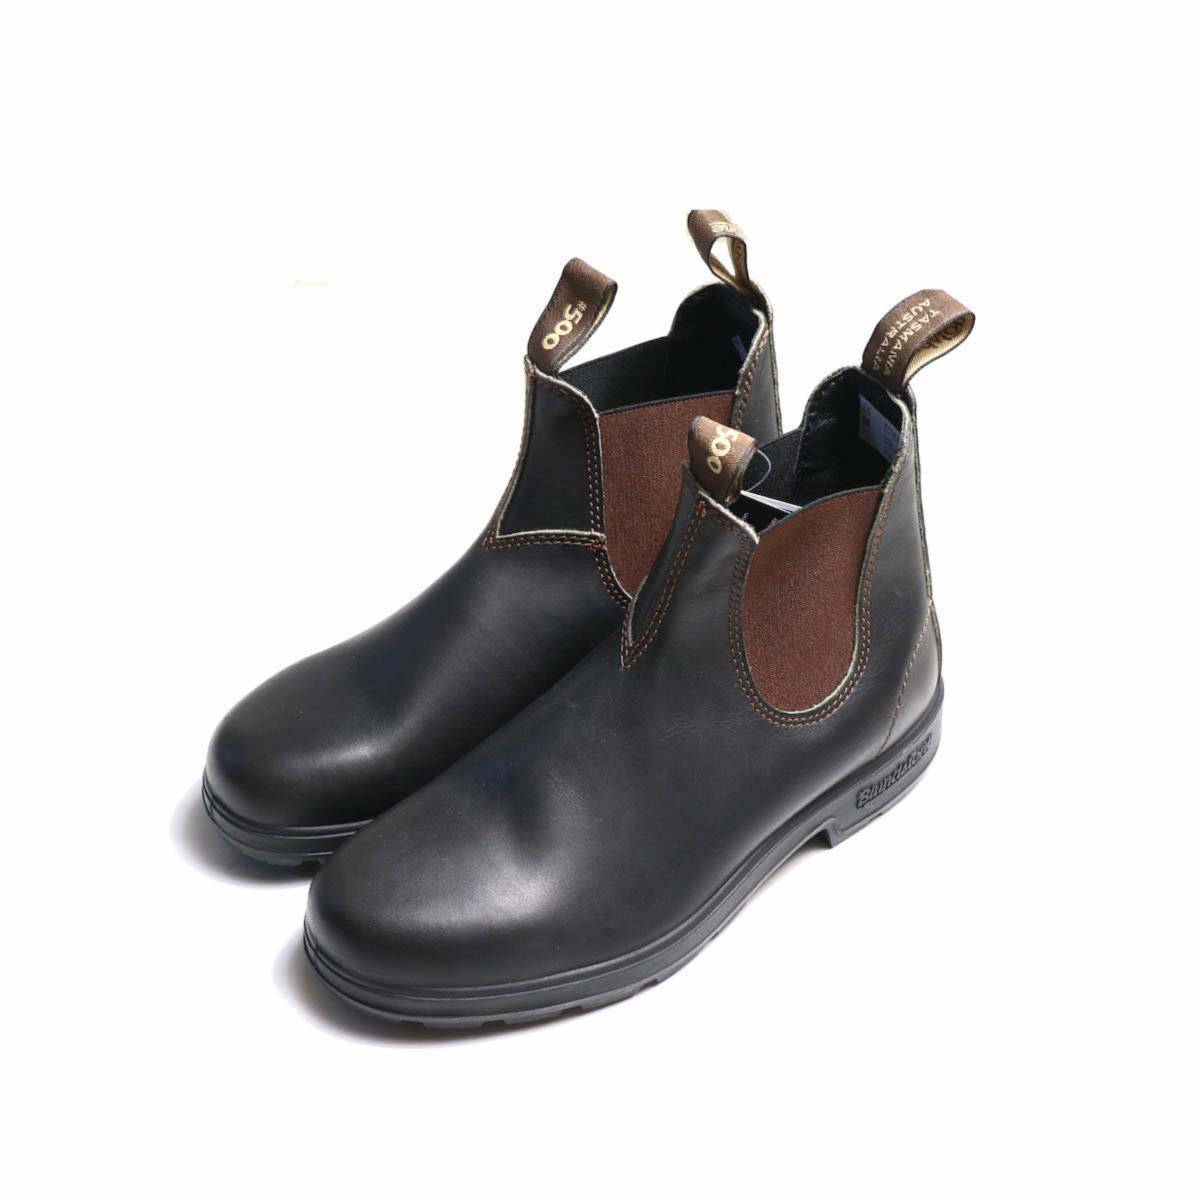 BLUNDSTONE / Side Gore Boots #500 (Brown) 正面